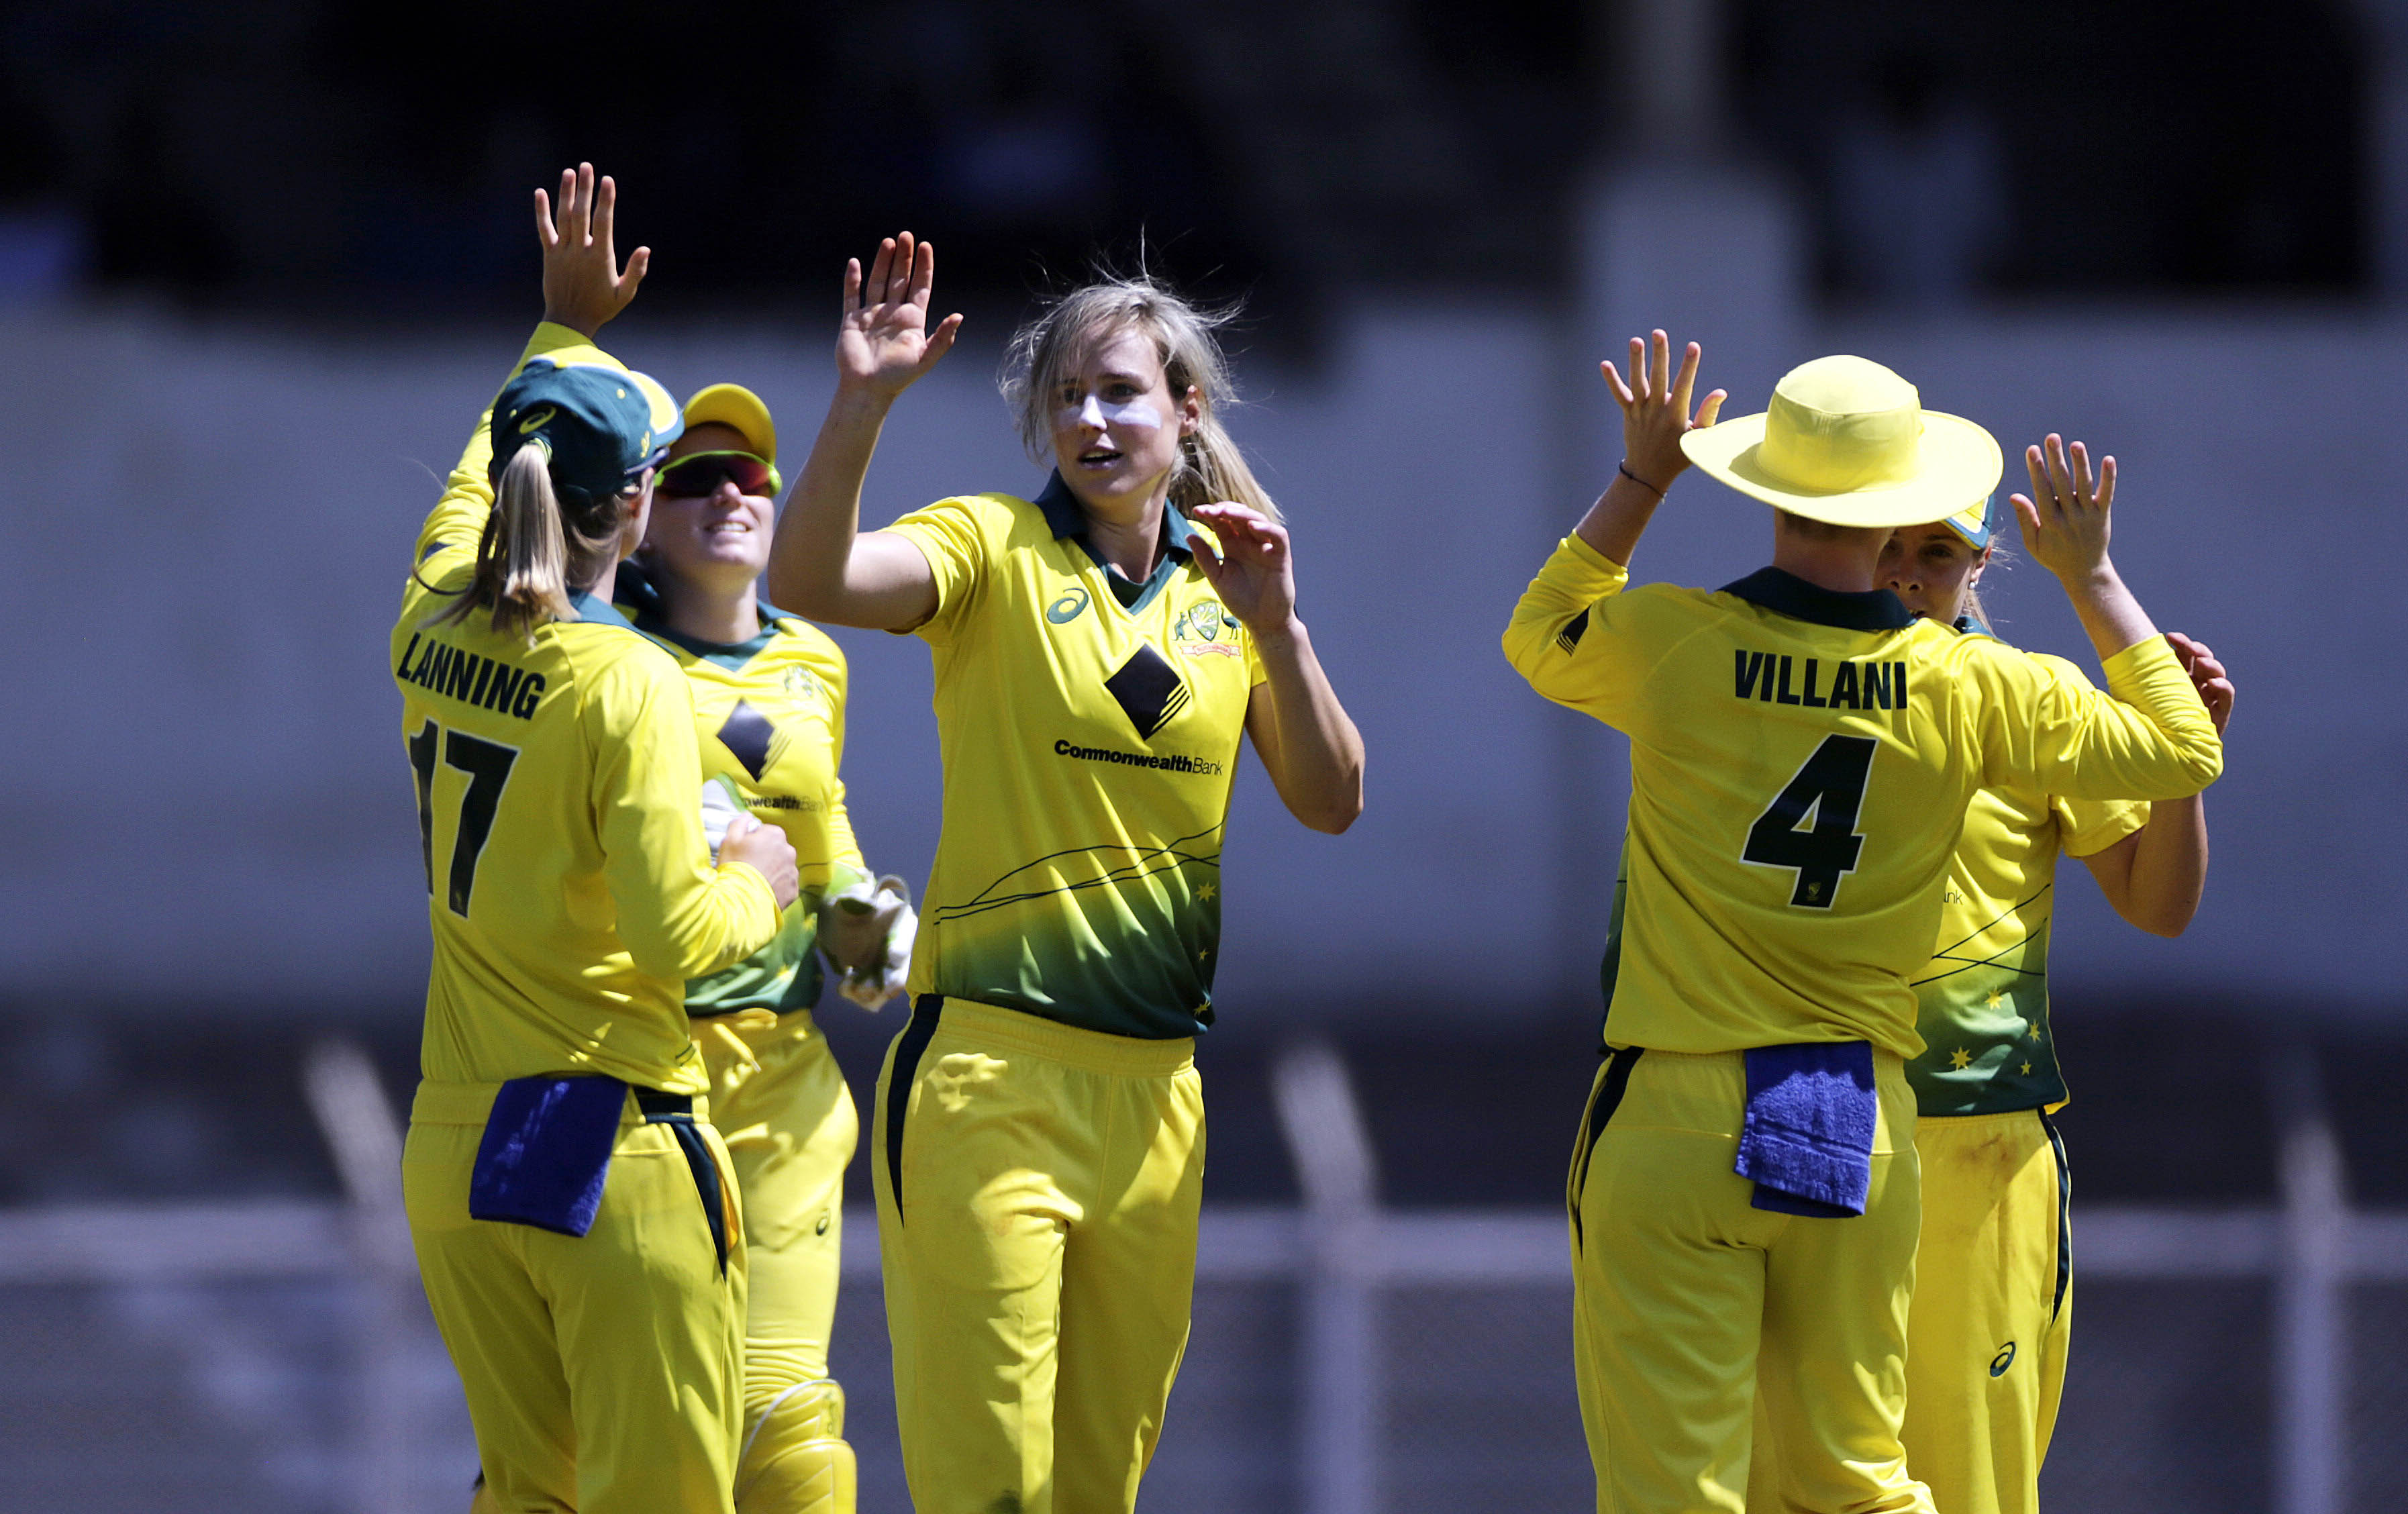 Australia`s Ellyse Perry (center) celebrates after Harmanpreet Kaur`s wicket against India during the Women`s T20 Triangular Series in Mumbai, India on Thursday.